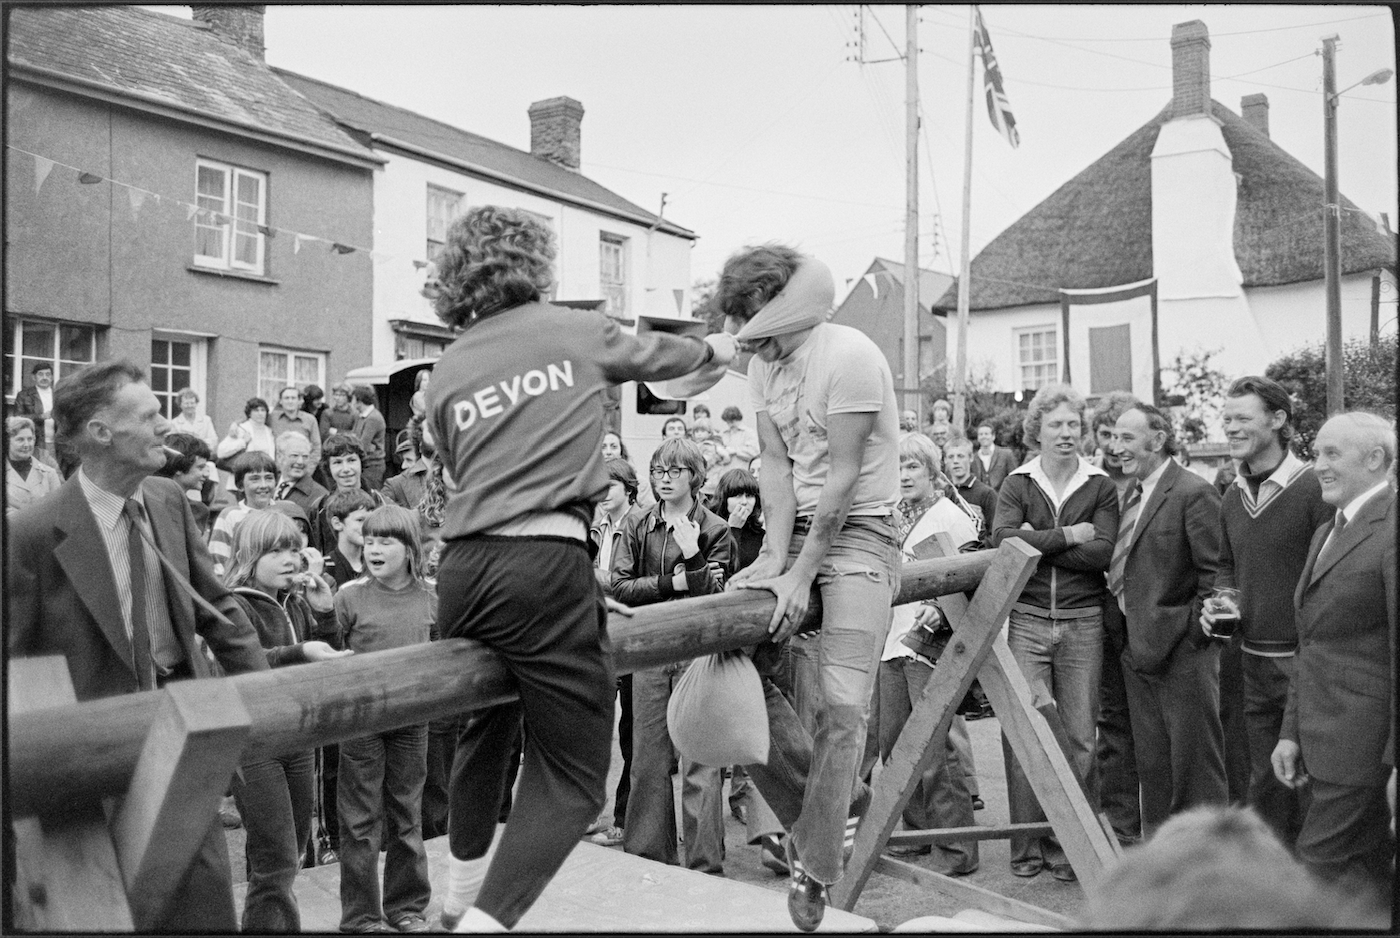 Village fair, pillow fight on greasy pole, Winkleigh, August 1980. Documentary photograph by James Ravilious for the Beaford Archive © Beaford Arts